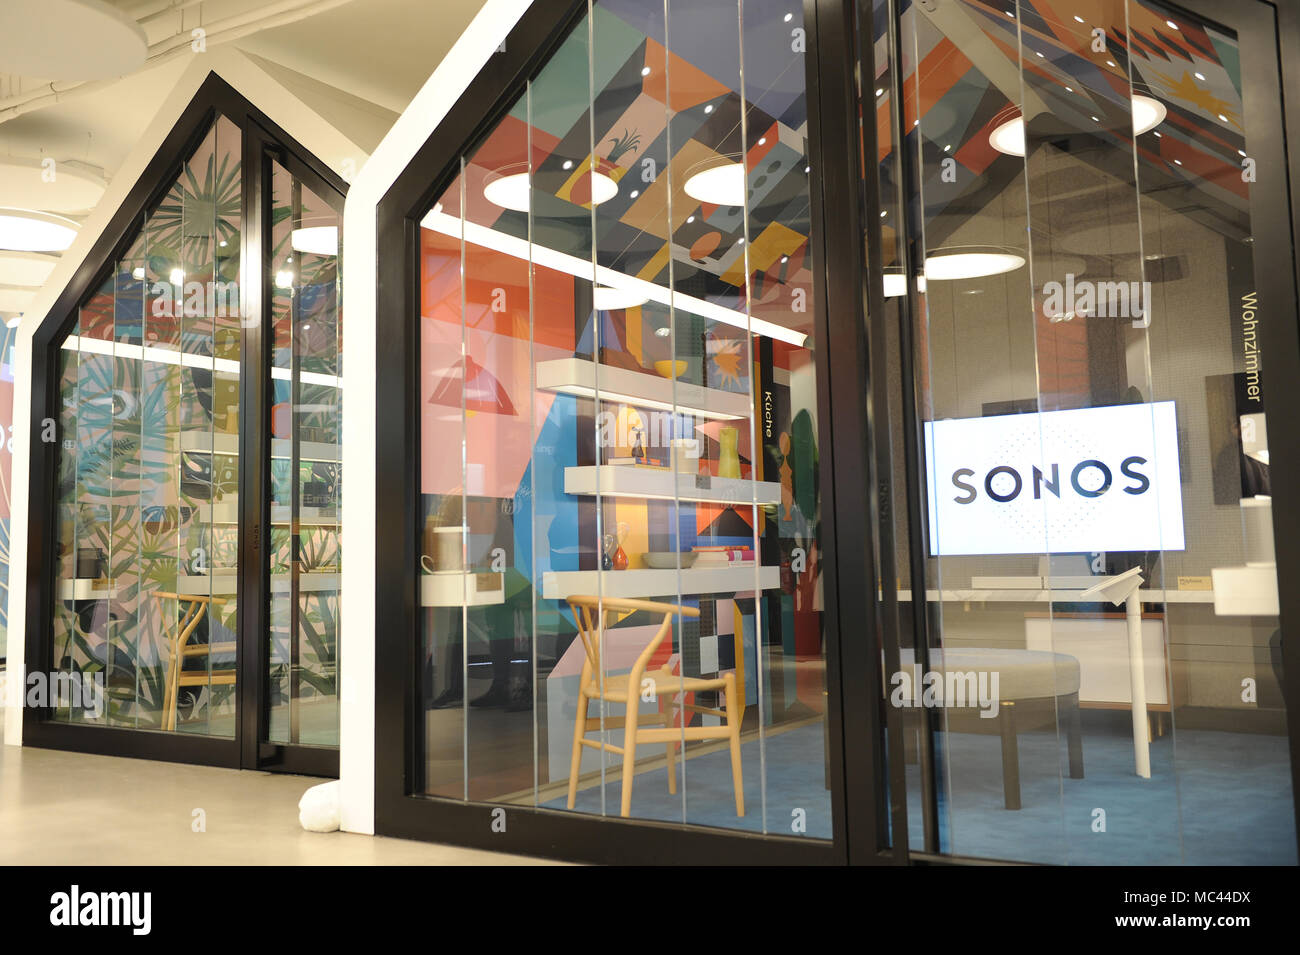 Sonos Stock Photos Sonos Stock Images Alamy